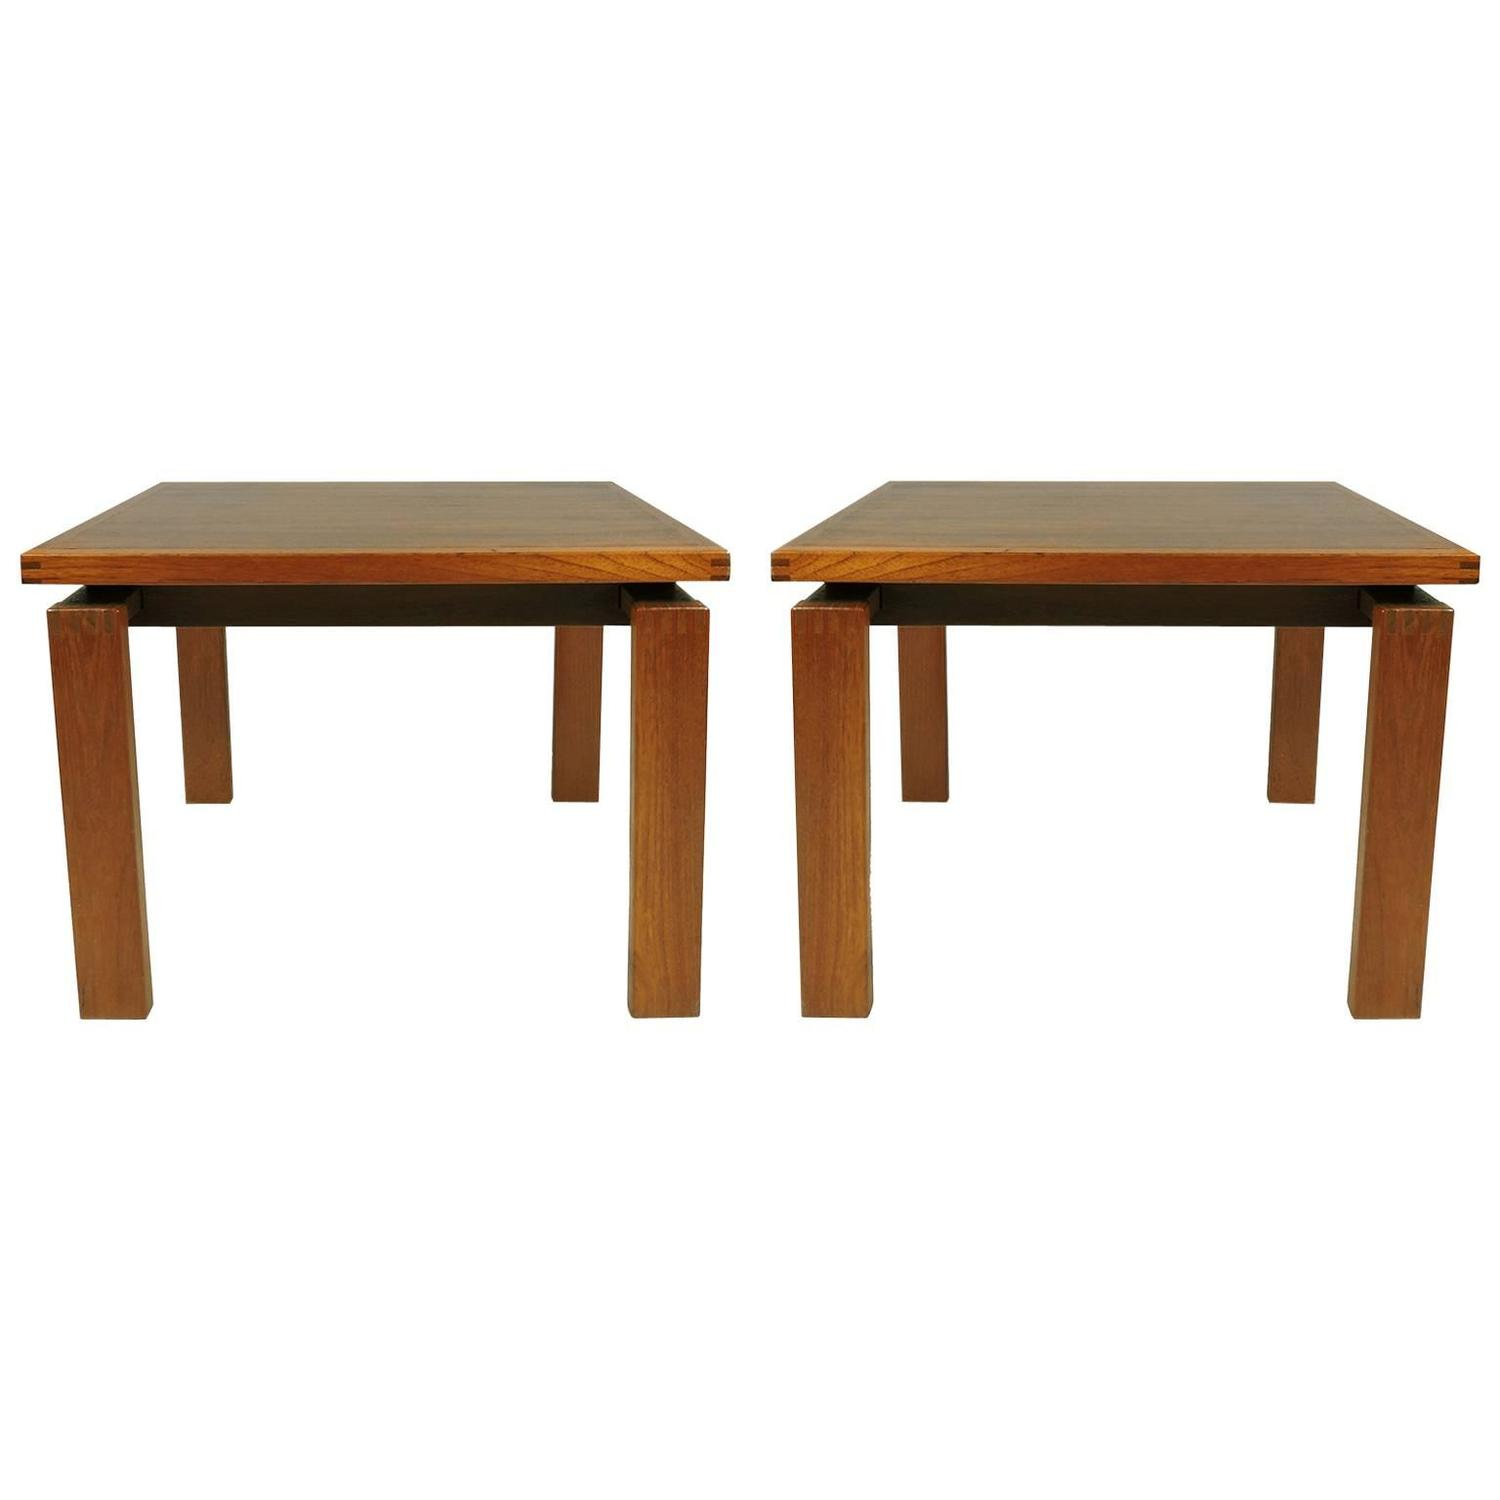 Pair of Danish Mid Century Modern Teak Side Tables by Trioh Mobler